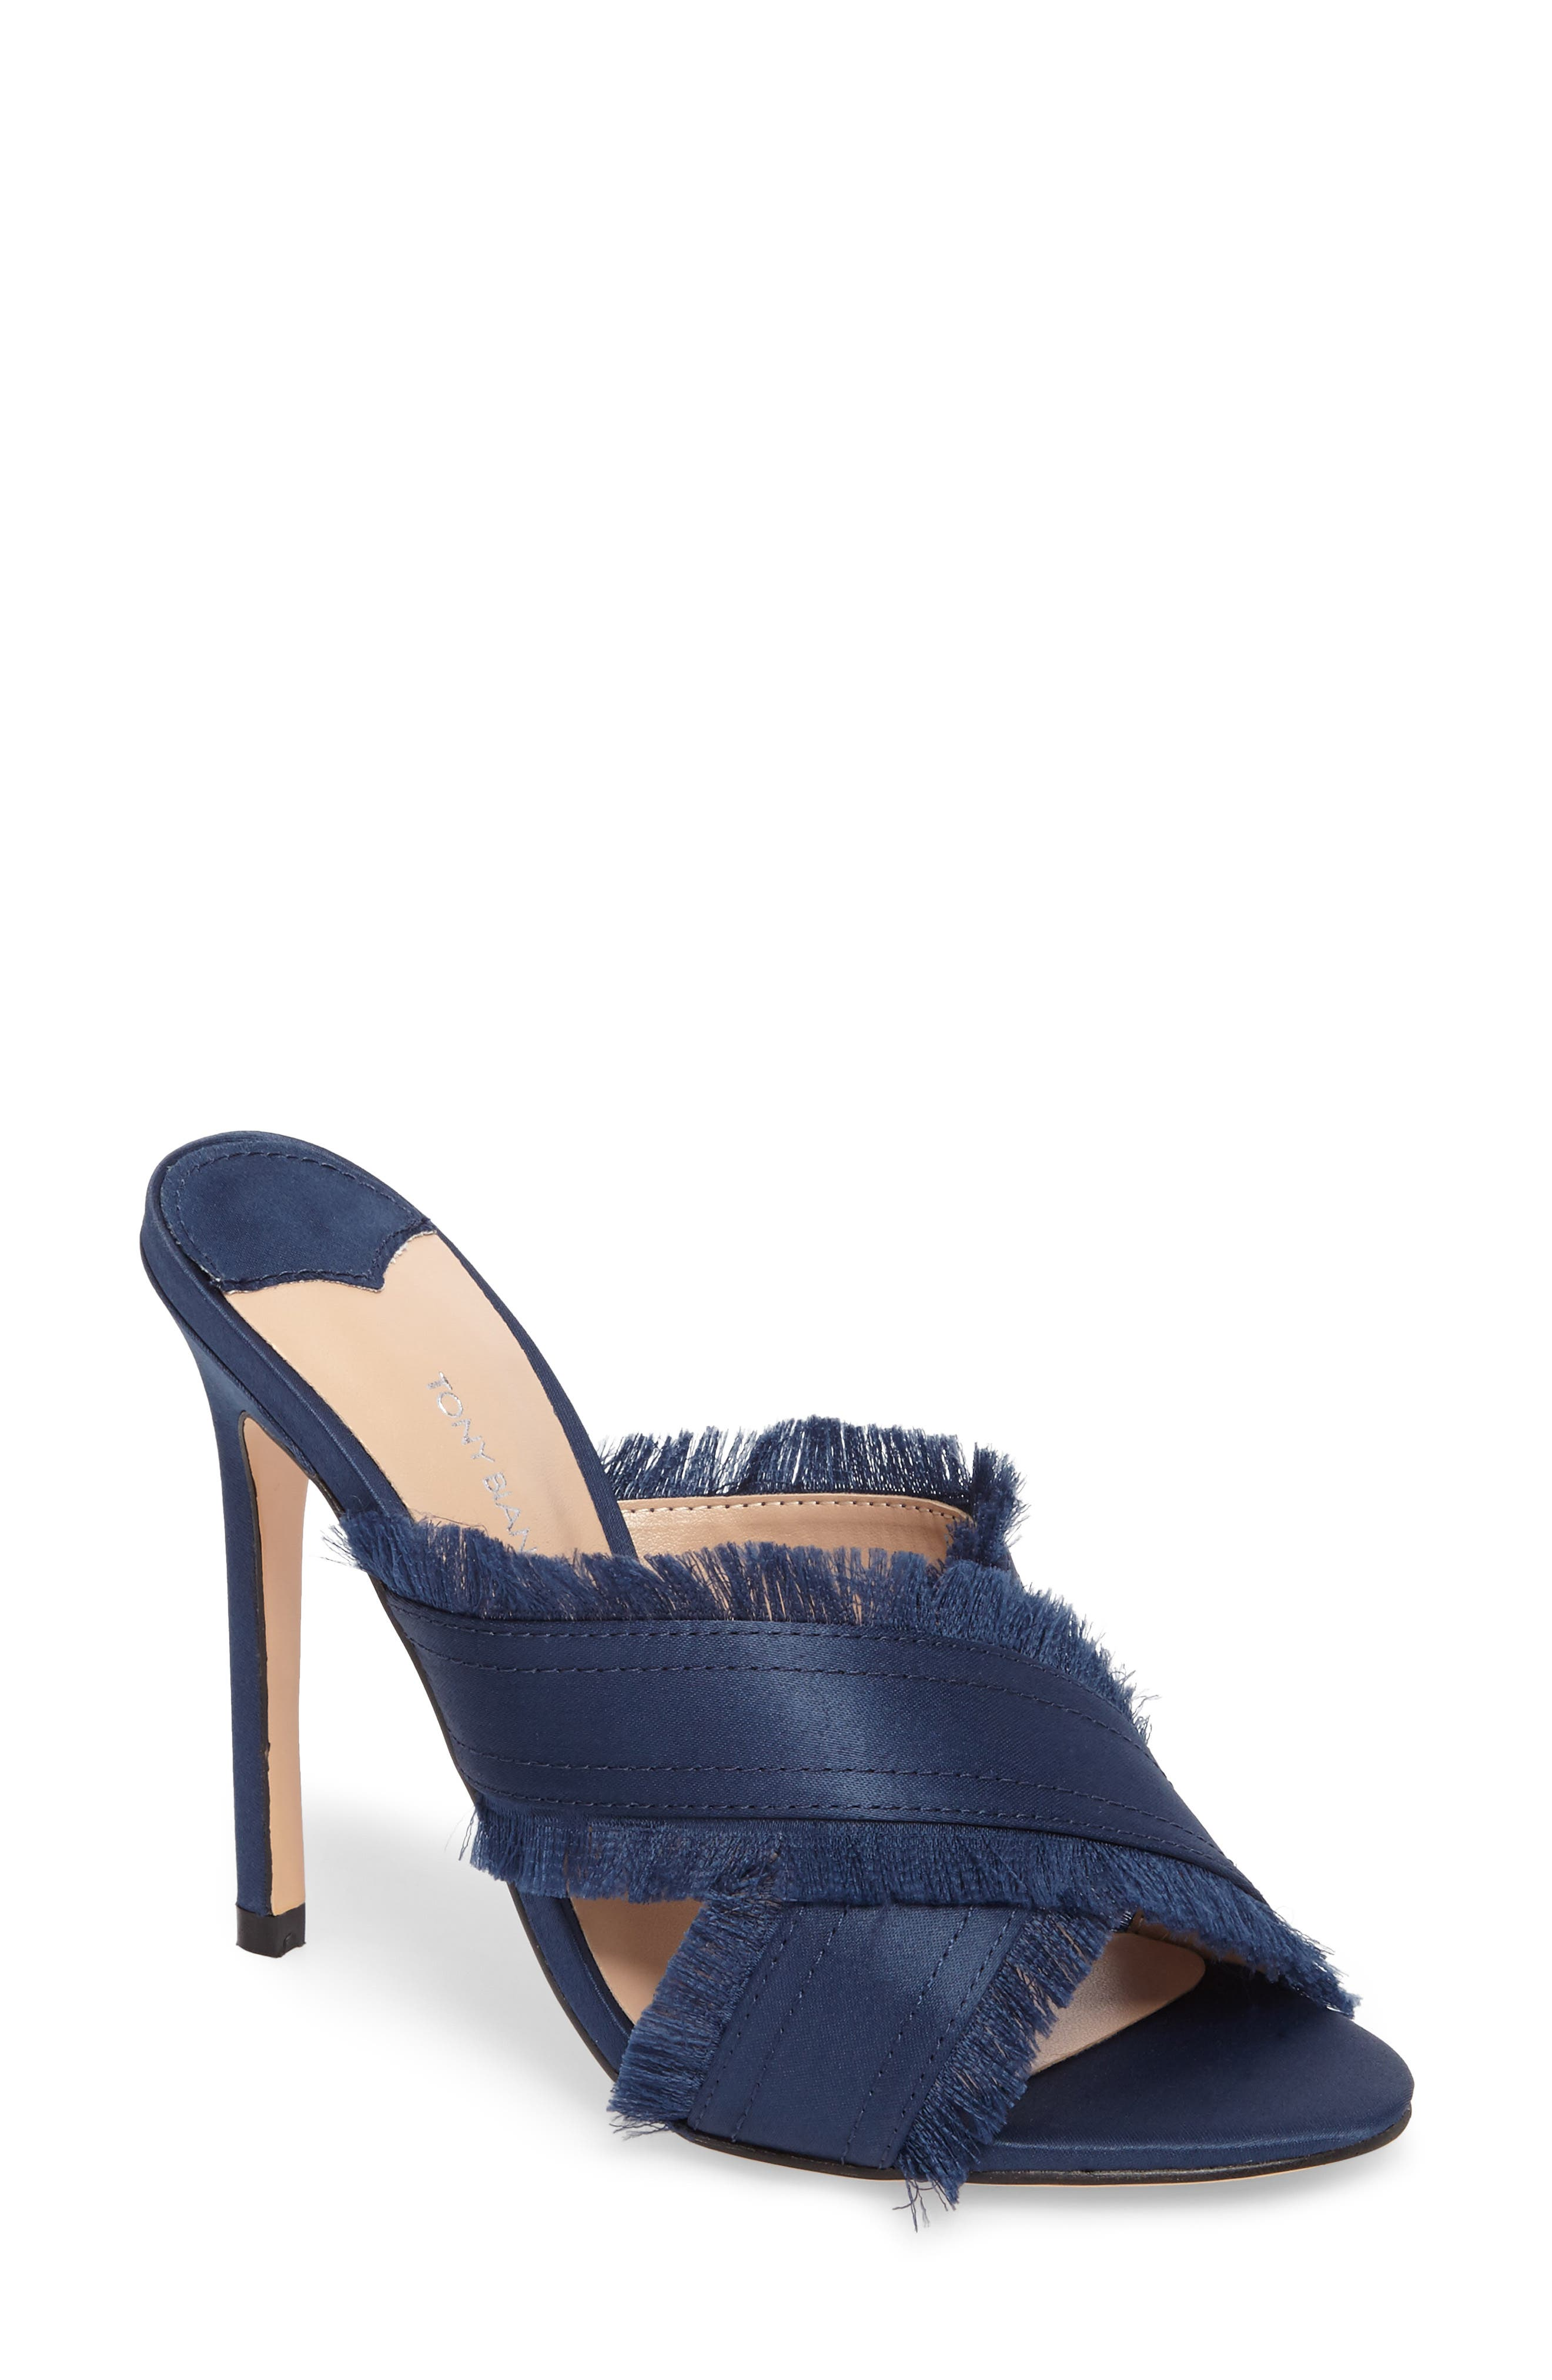 Klay Fringed Cross Strap Mule,                         Main,                         color, Navy Luxe Satin